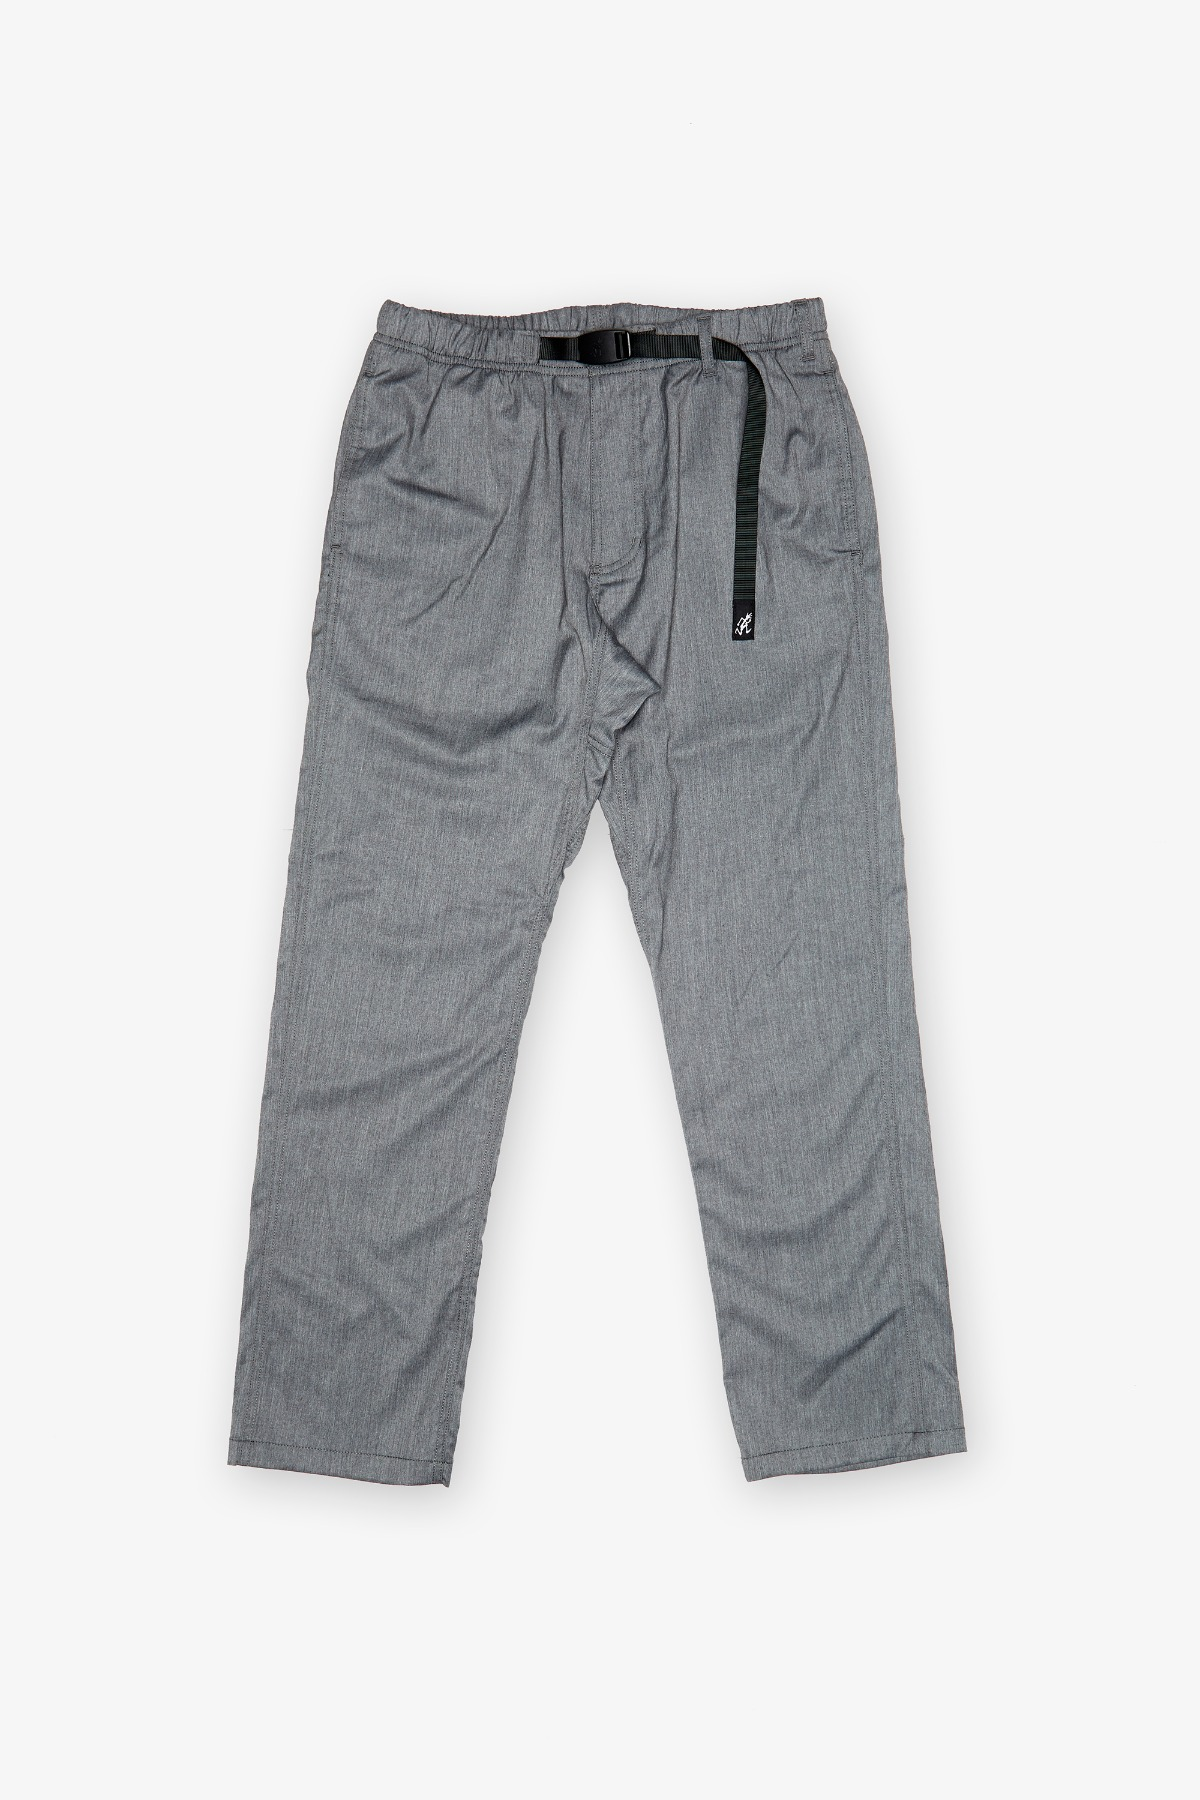 GABARDINE NN-PANTS JUST CUT GREY